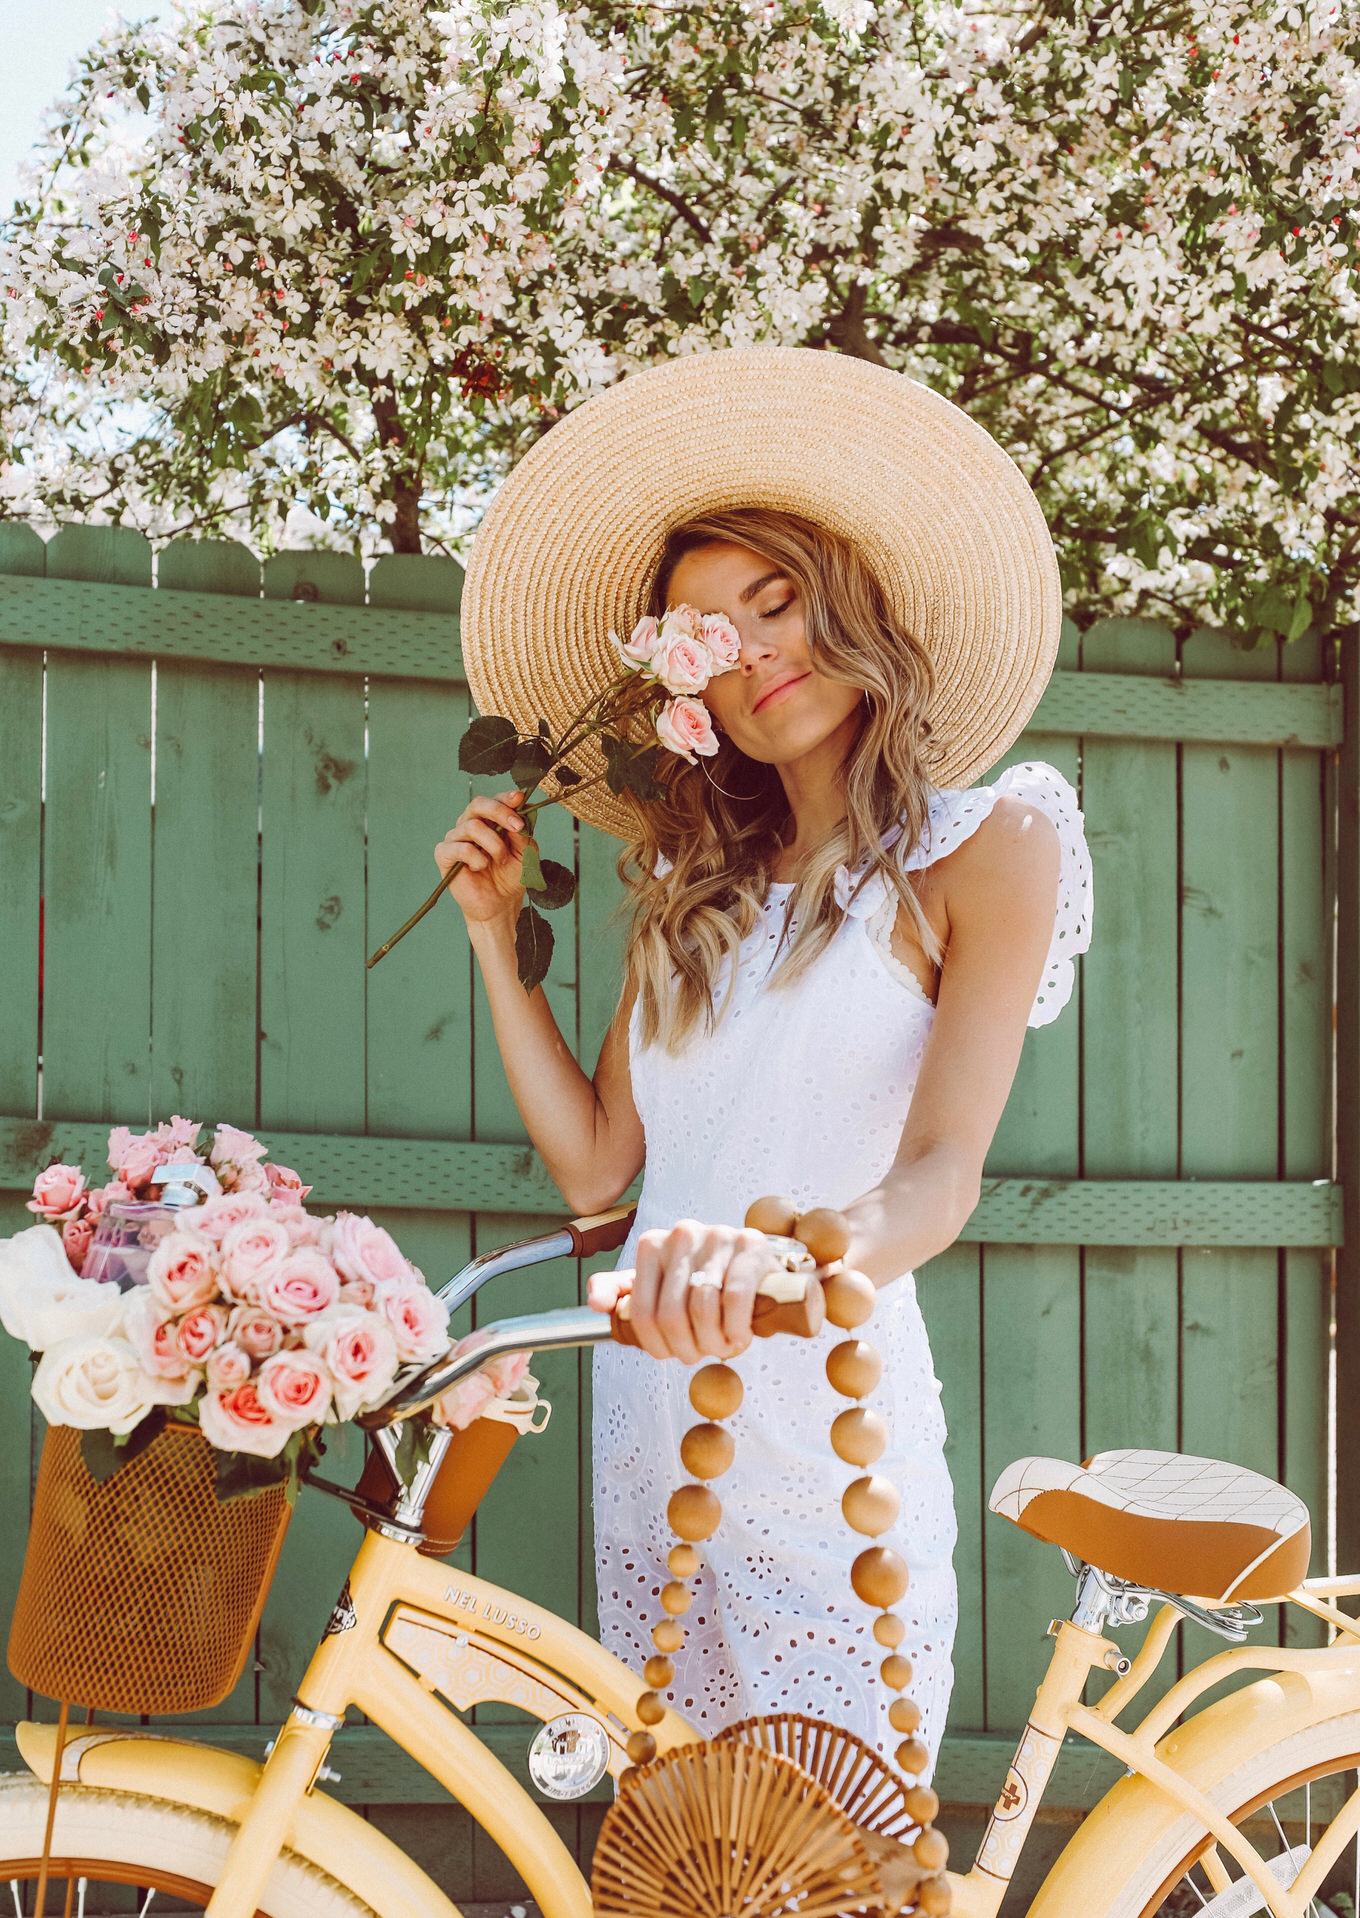 Spring Bike Ride with flowers